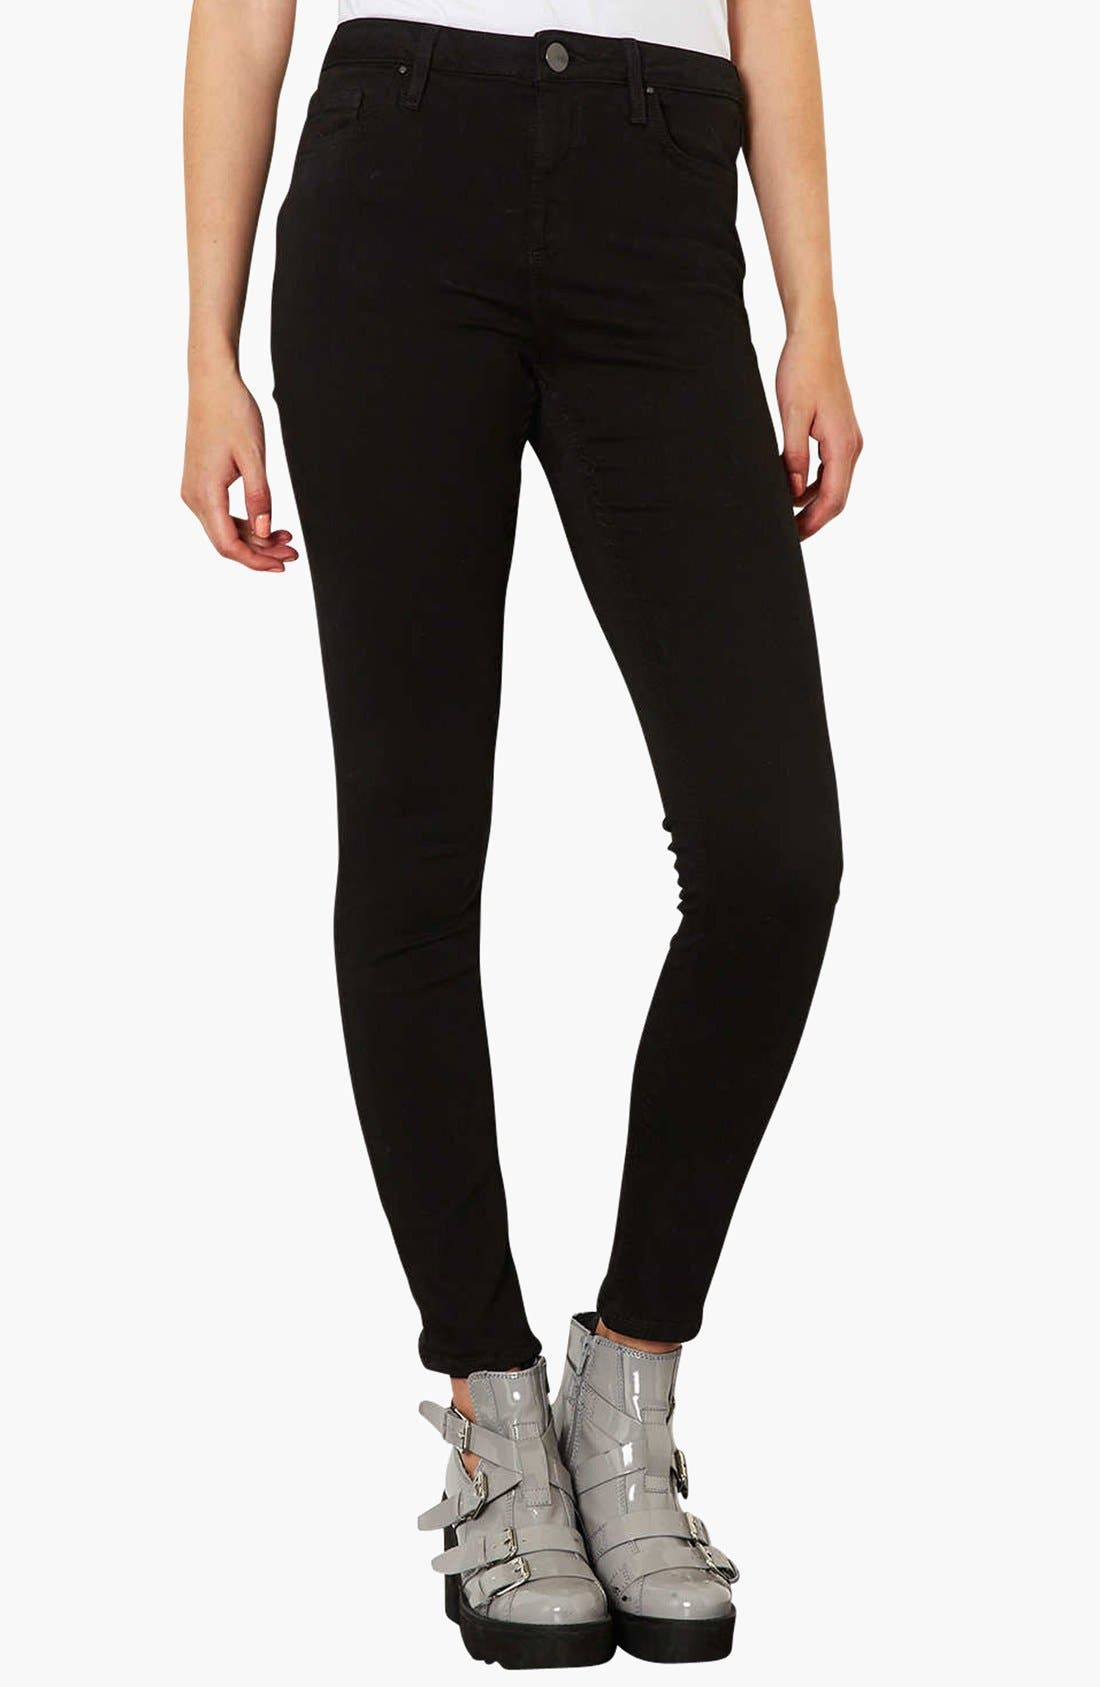 Alternate Image 1 Selected - Topshop Moto 'Jamie' High Rise Skinny Jeans (Regular, Short & Long)